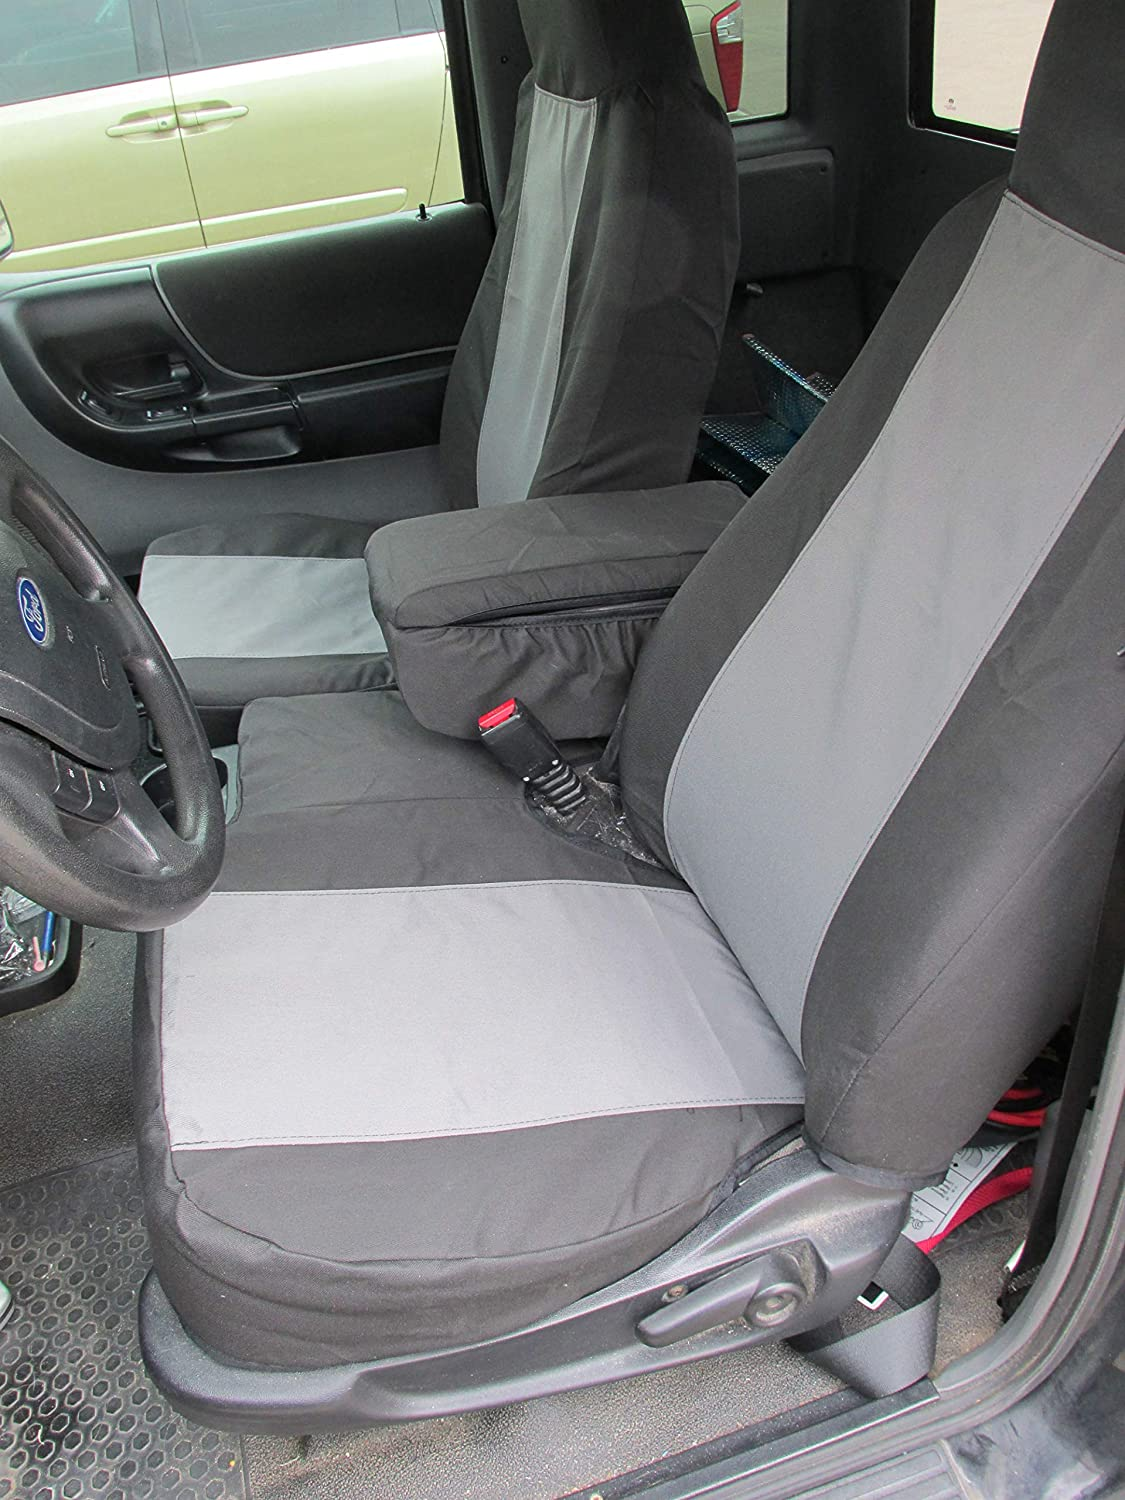 Excellent Durafit Seat Covers Made To Fit 2004 2005 Ford Ranger Pickup 60 40 Split Bench Seat Custom Seat Covers With Opening Console Black Gray Automotive Uwap Interior Chair Design Uwaporg